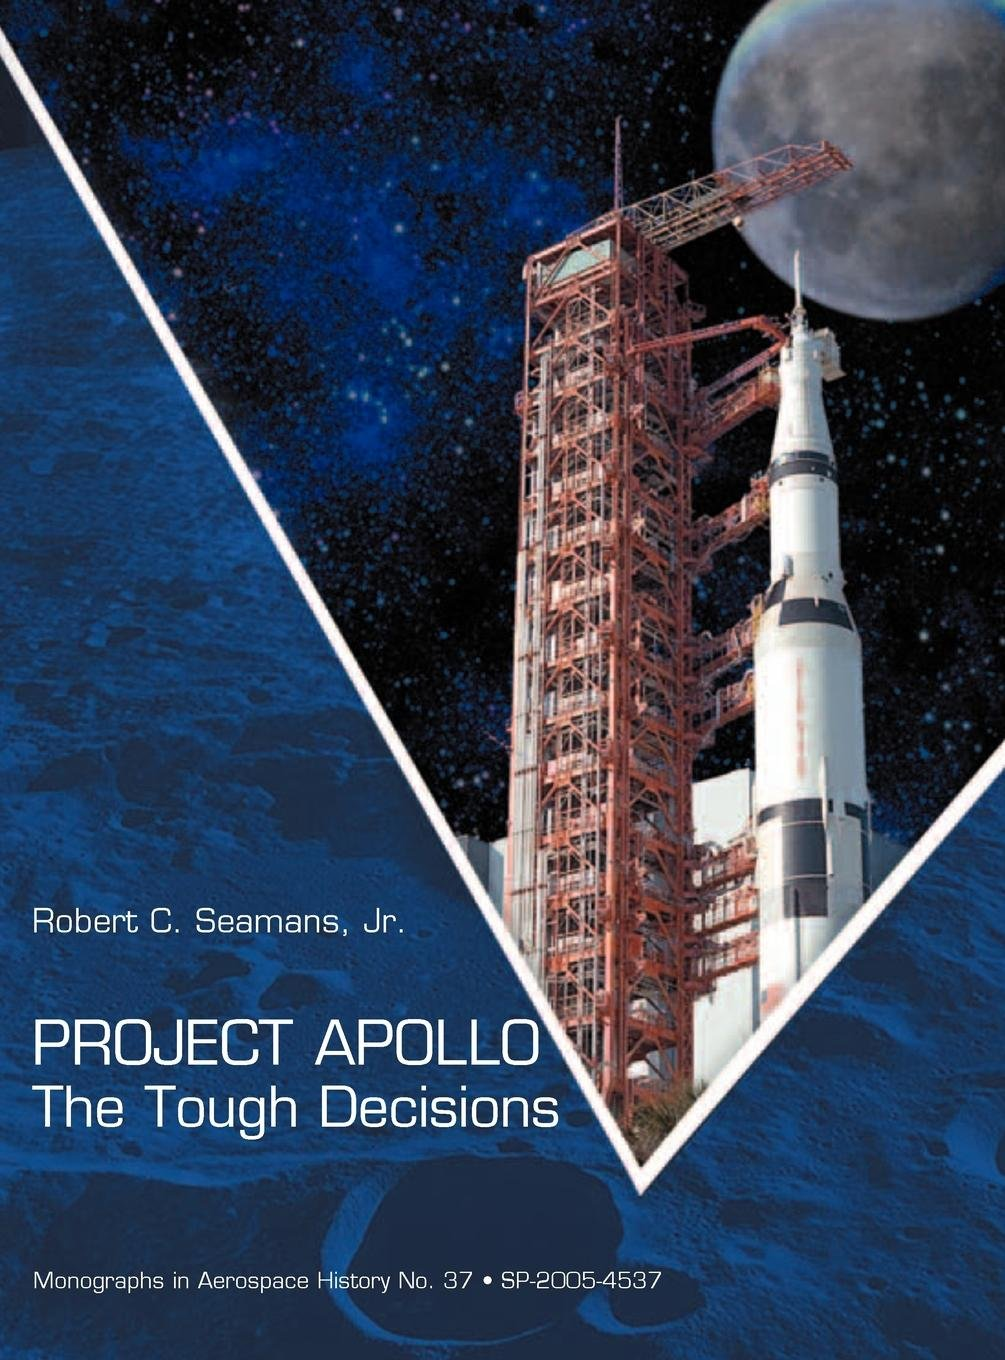 Project Apollo: The Tough Decisions (NASA Monographs in Aerospace History series, number 37) pdf epub